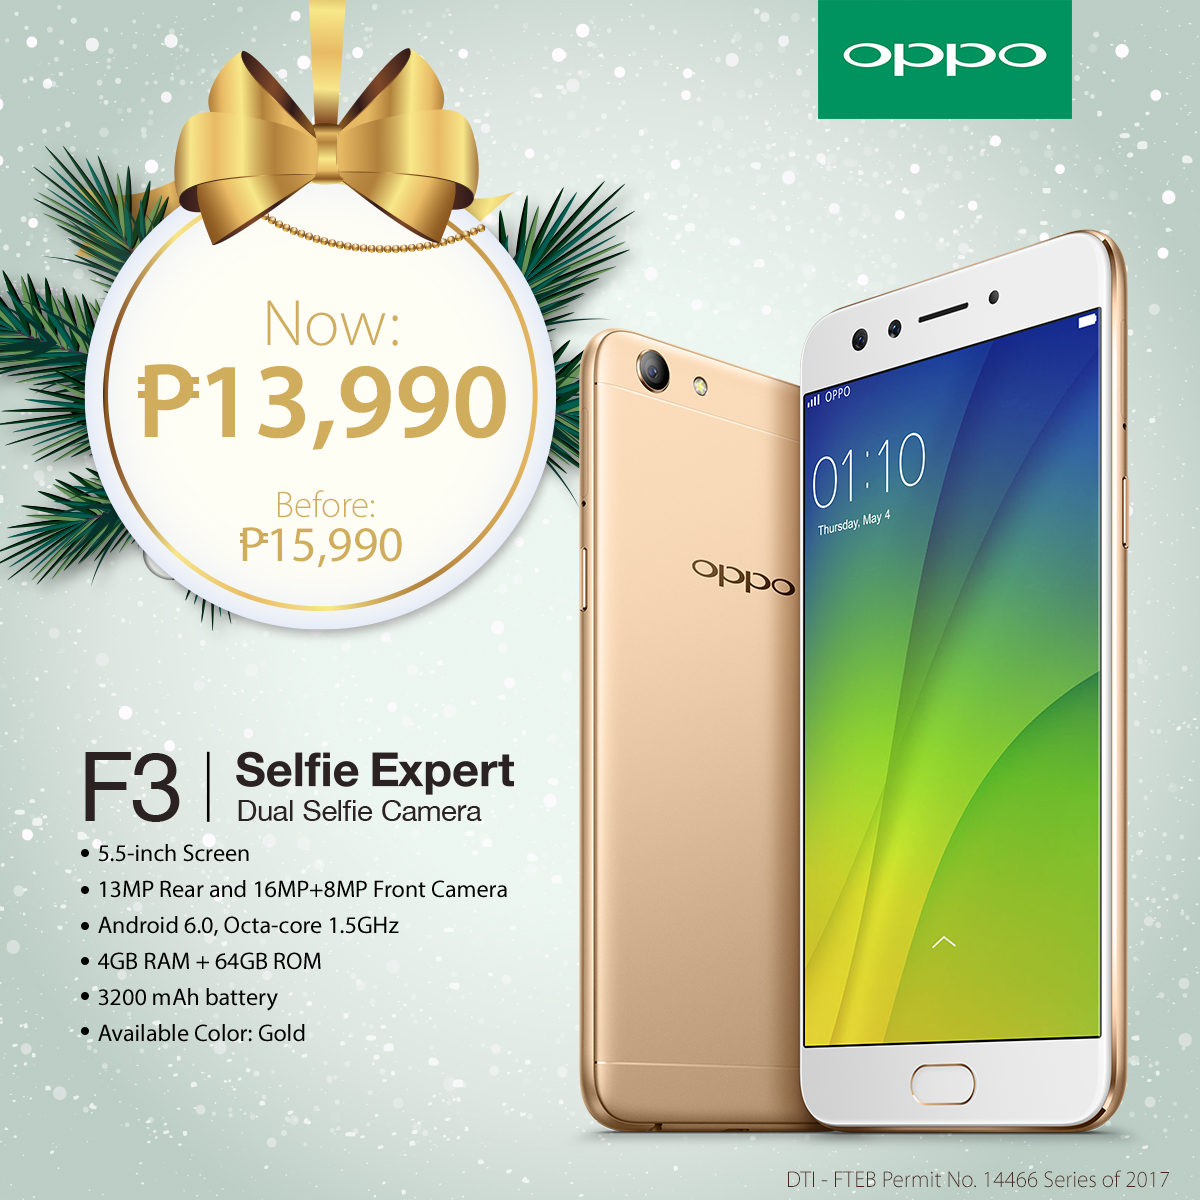 OPPO Holiday Gift Guide F3